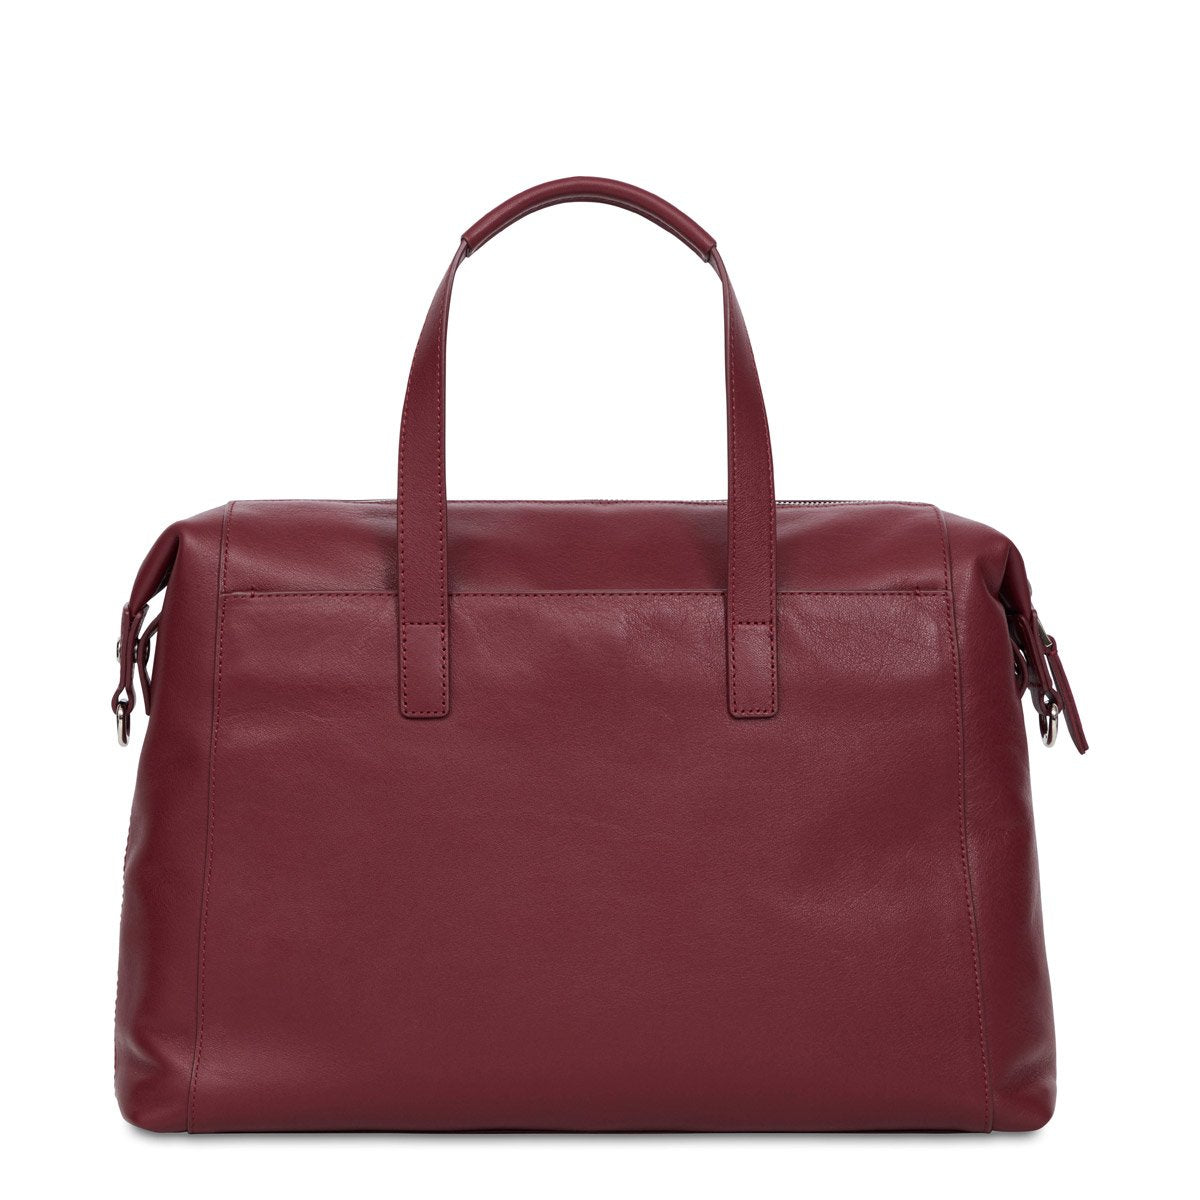 "Audley Leather Laptop Handbag - 14"" -  Burgundy 